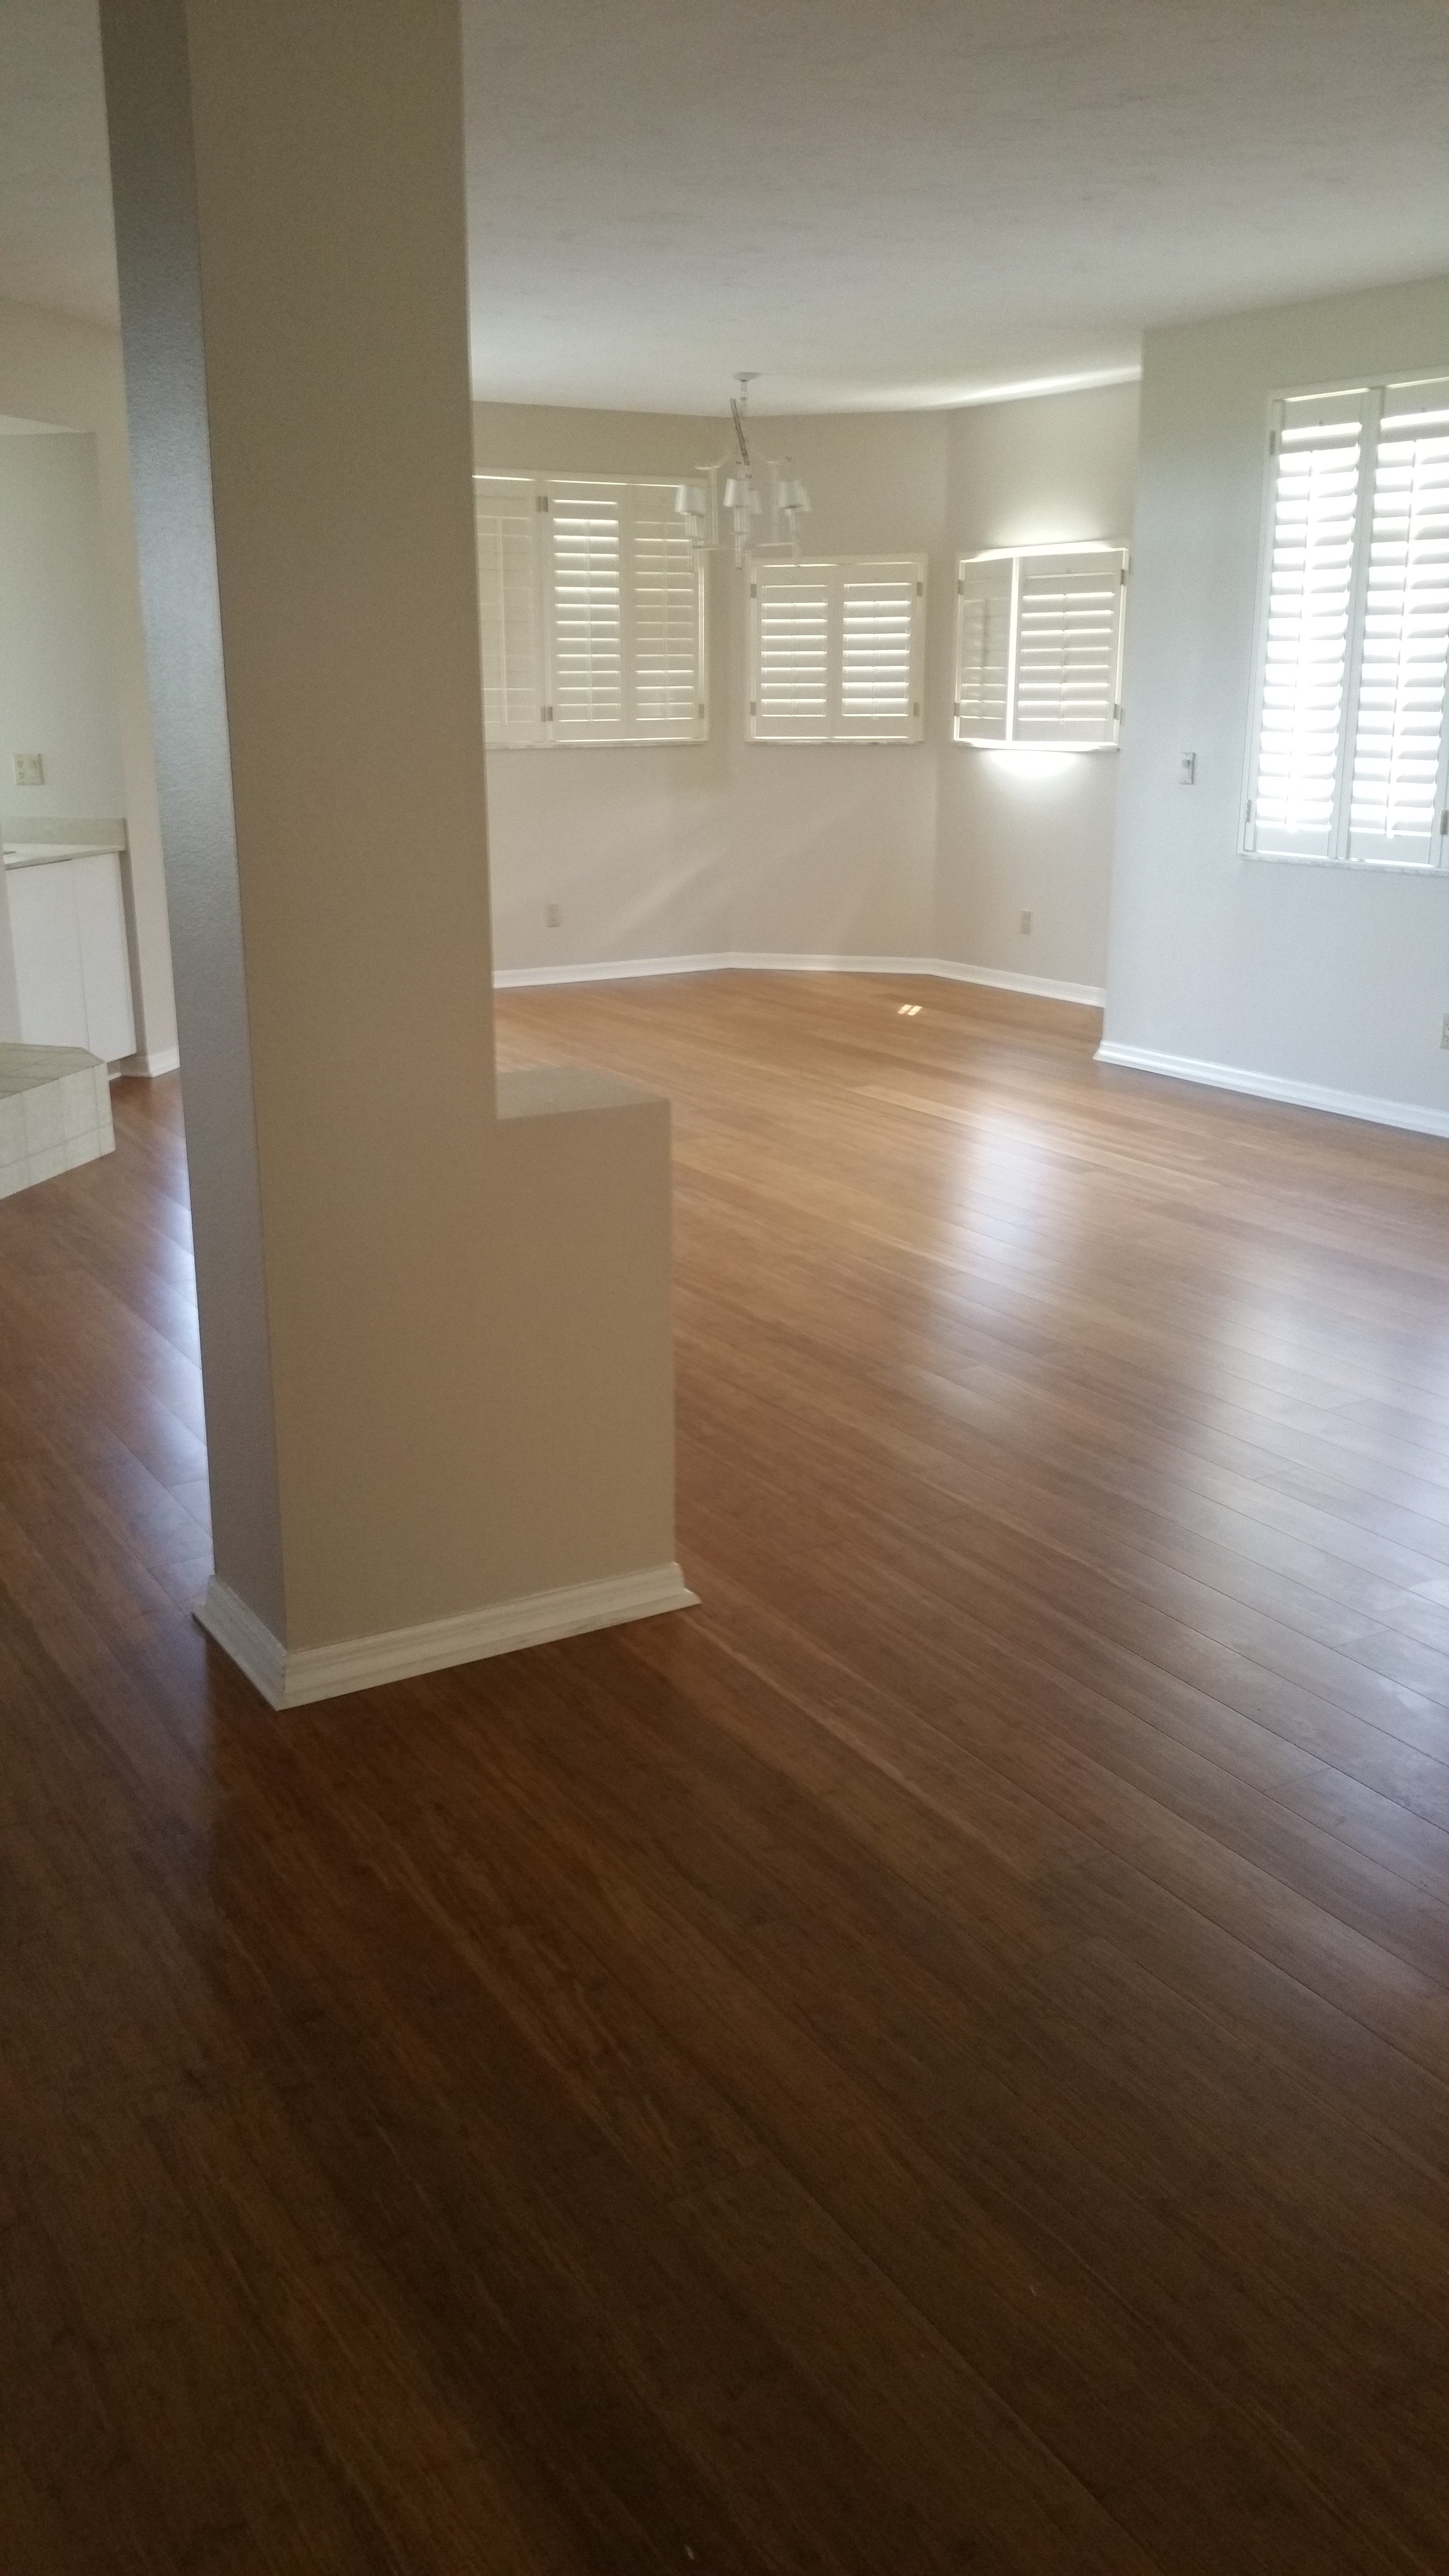 Hardwood Flooring in an empty finished basement